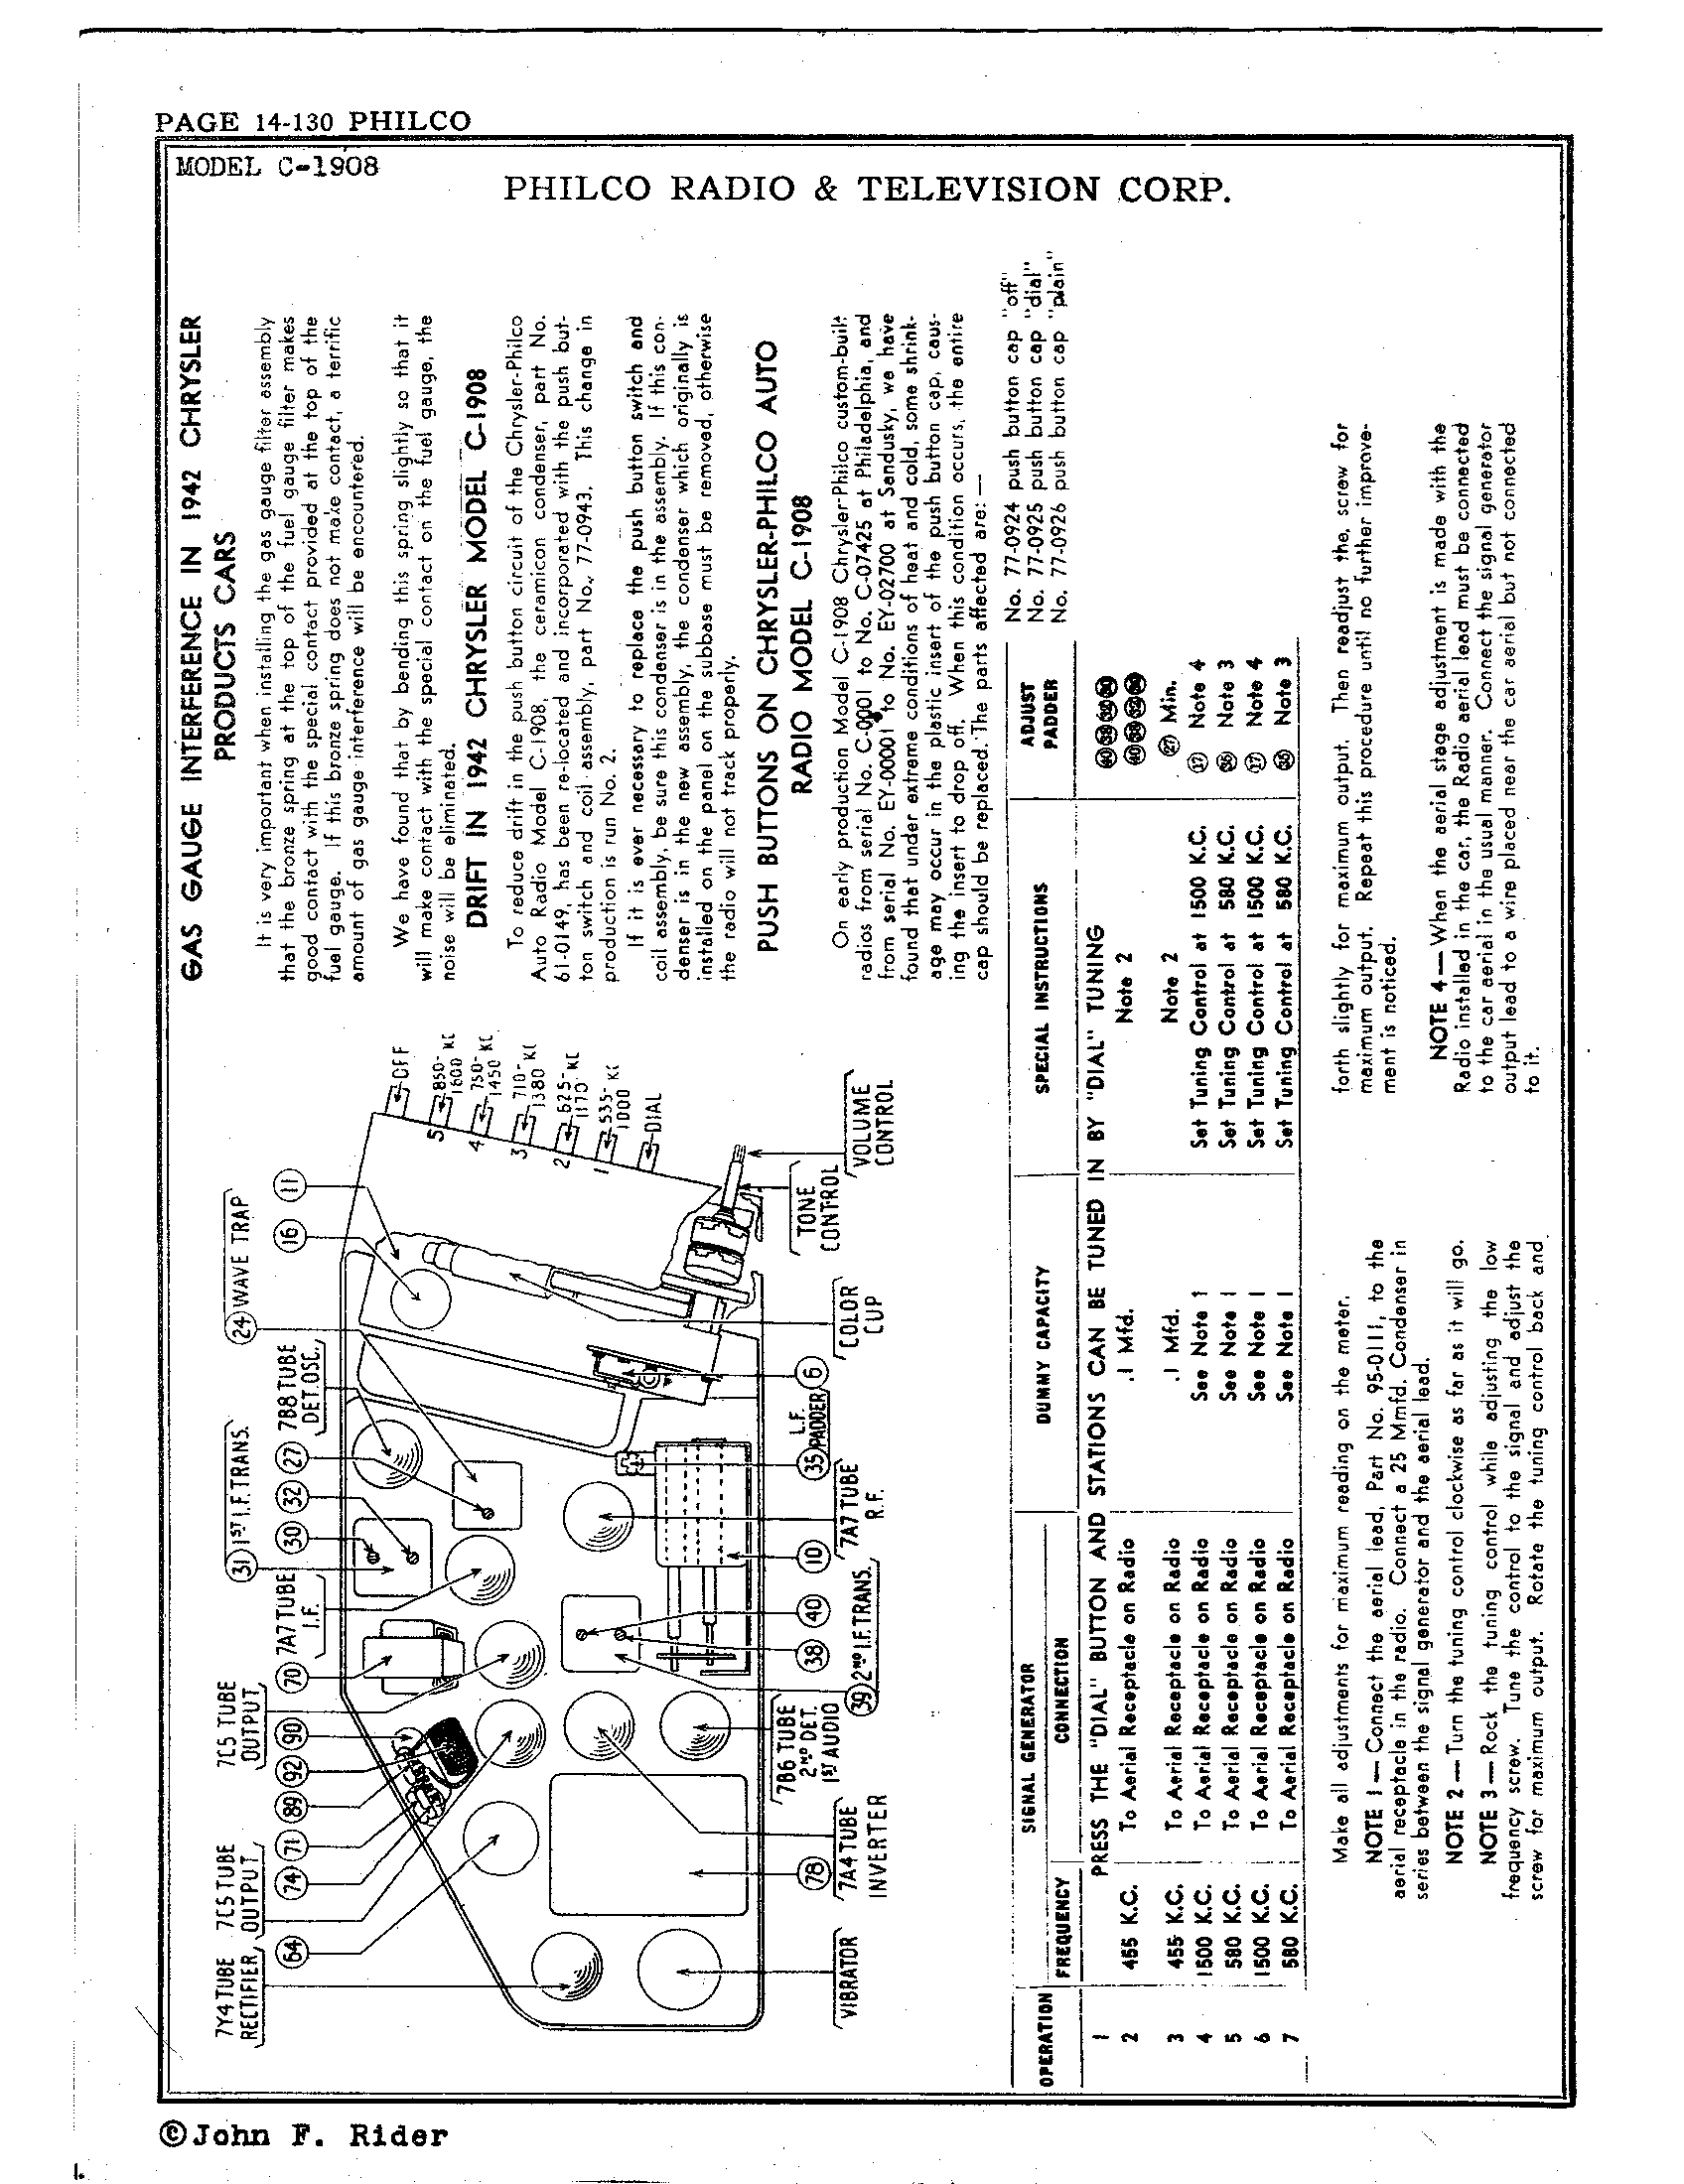 Philco Radio Television Corp C 1908 Antique Electronic Supply Gas Gauge Schematic Page 3 8709 Kb Rider Manual Volume 14